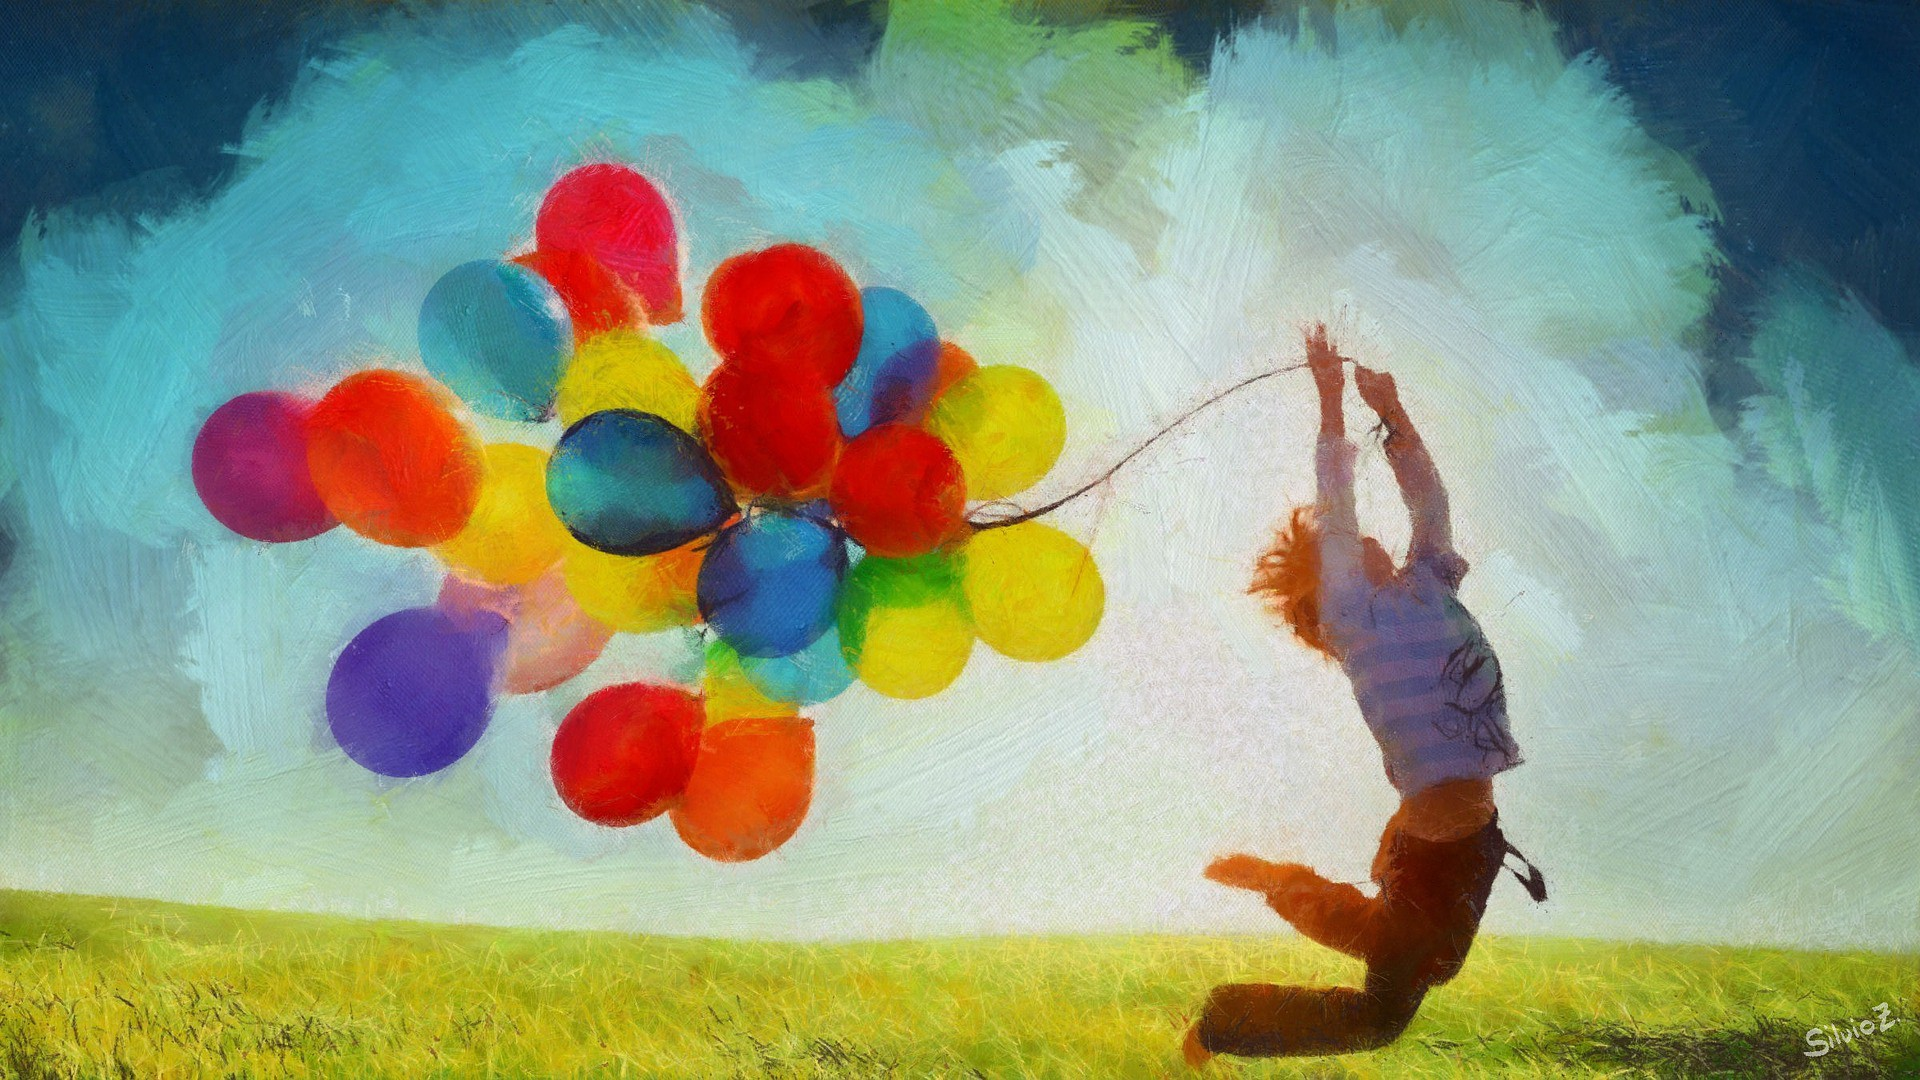 Forum on this topic: Playfulness May Be Natures Way of Helping , playfulness-may-be-natures-way-of-helping/